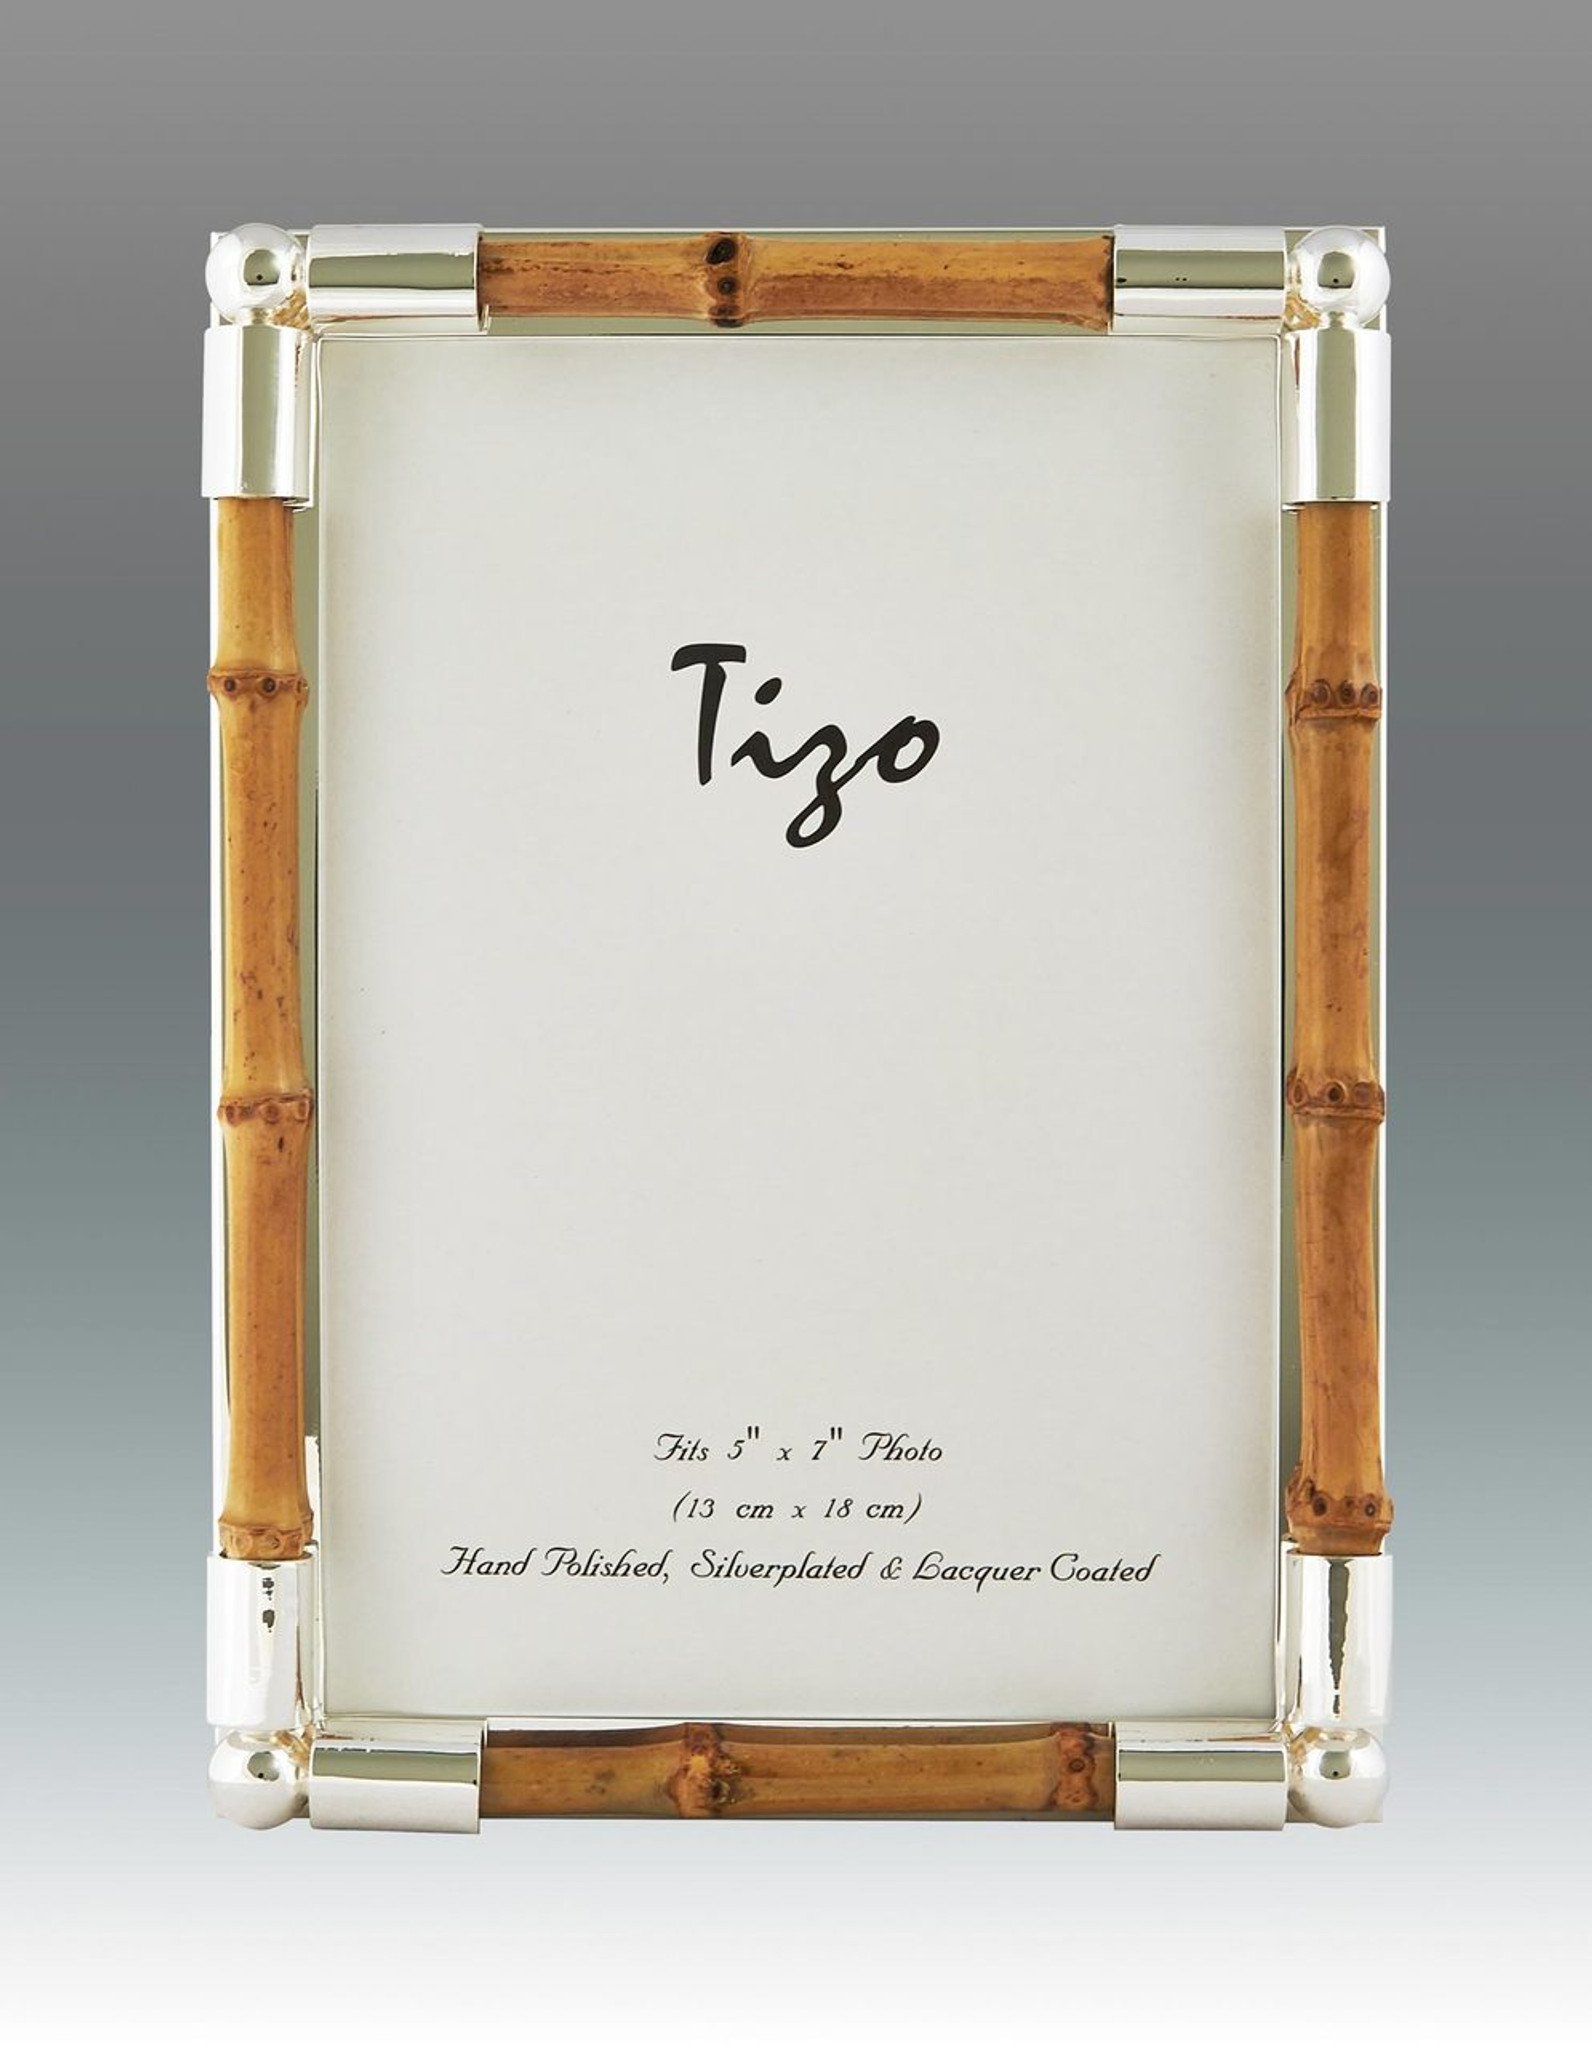 Tizo Bamboo Silver Plated Picture Frame 5 X 7 Inch